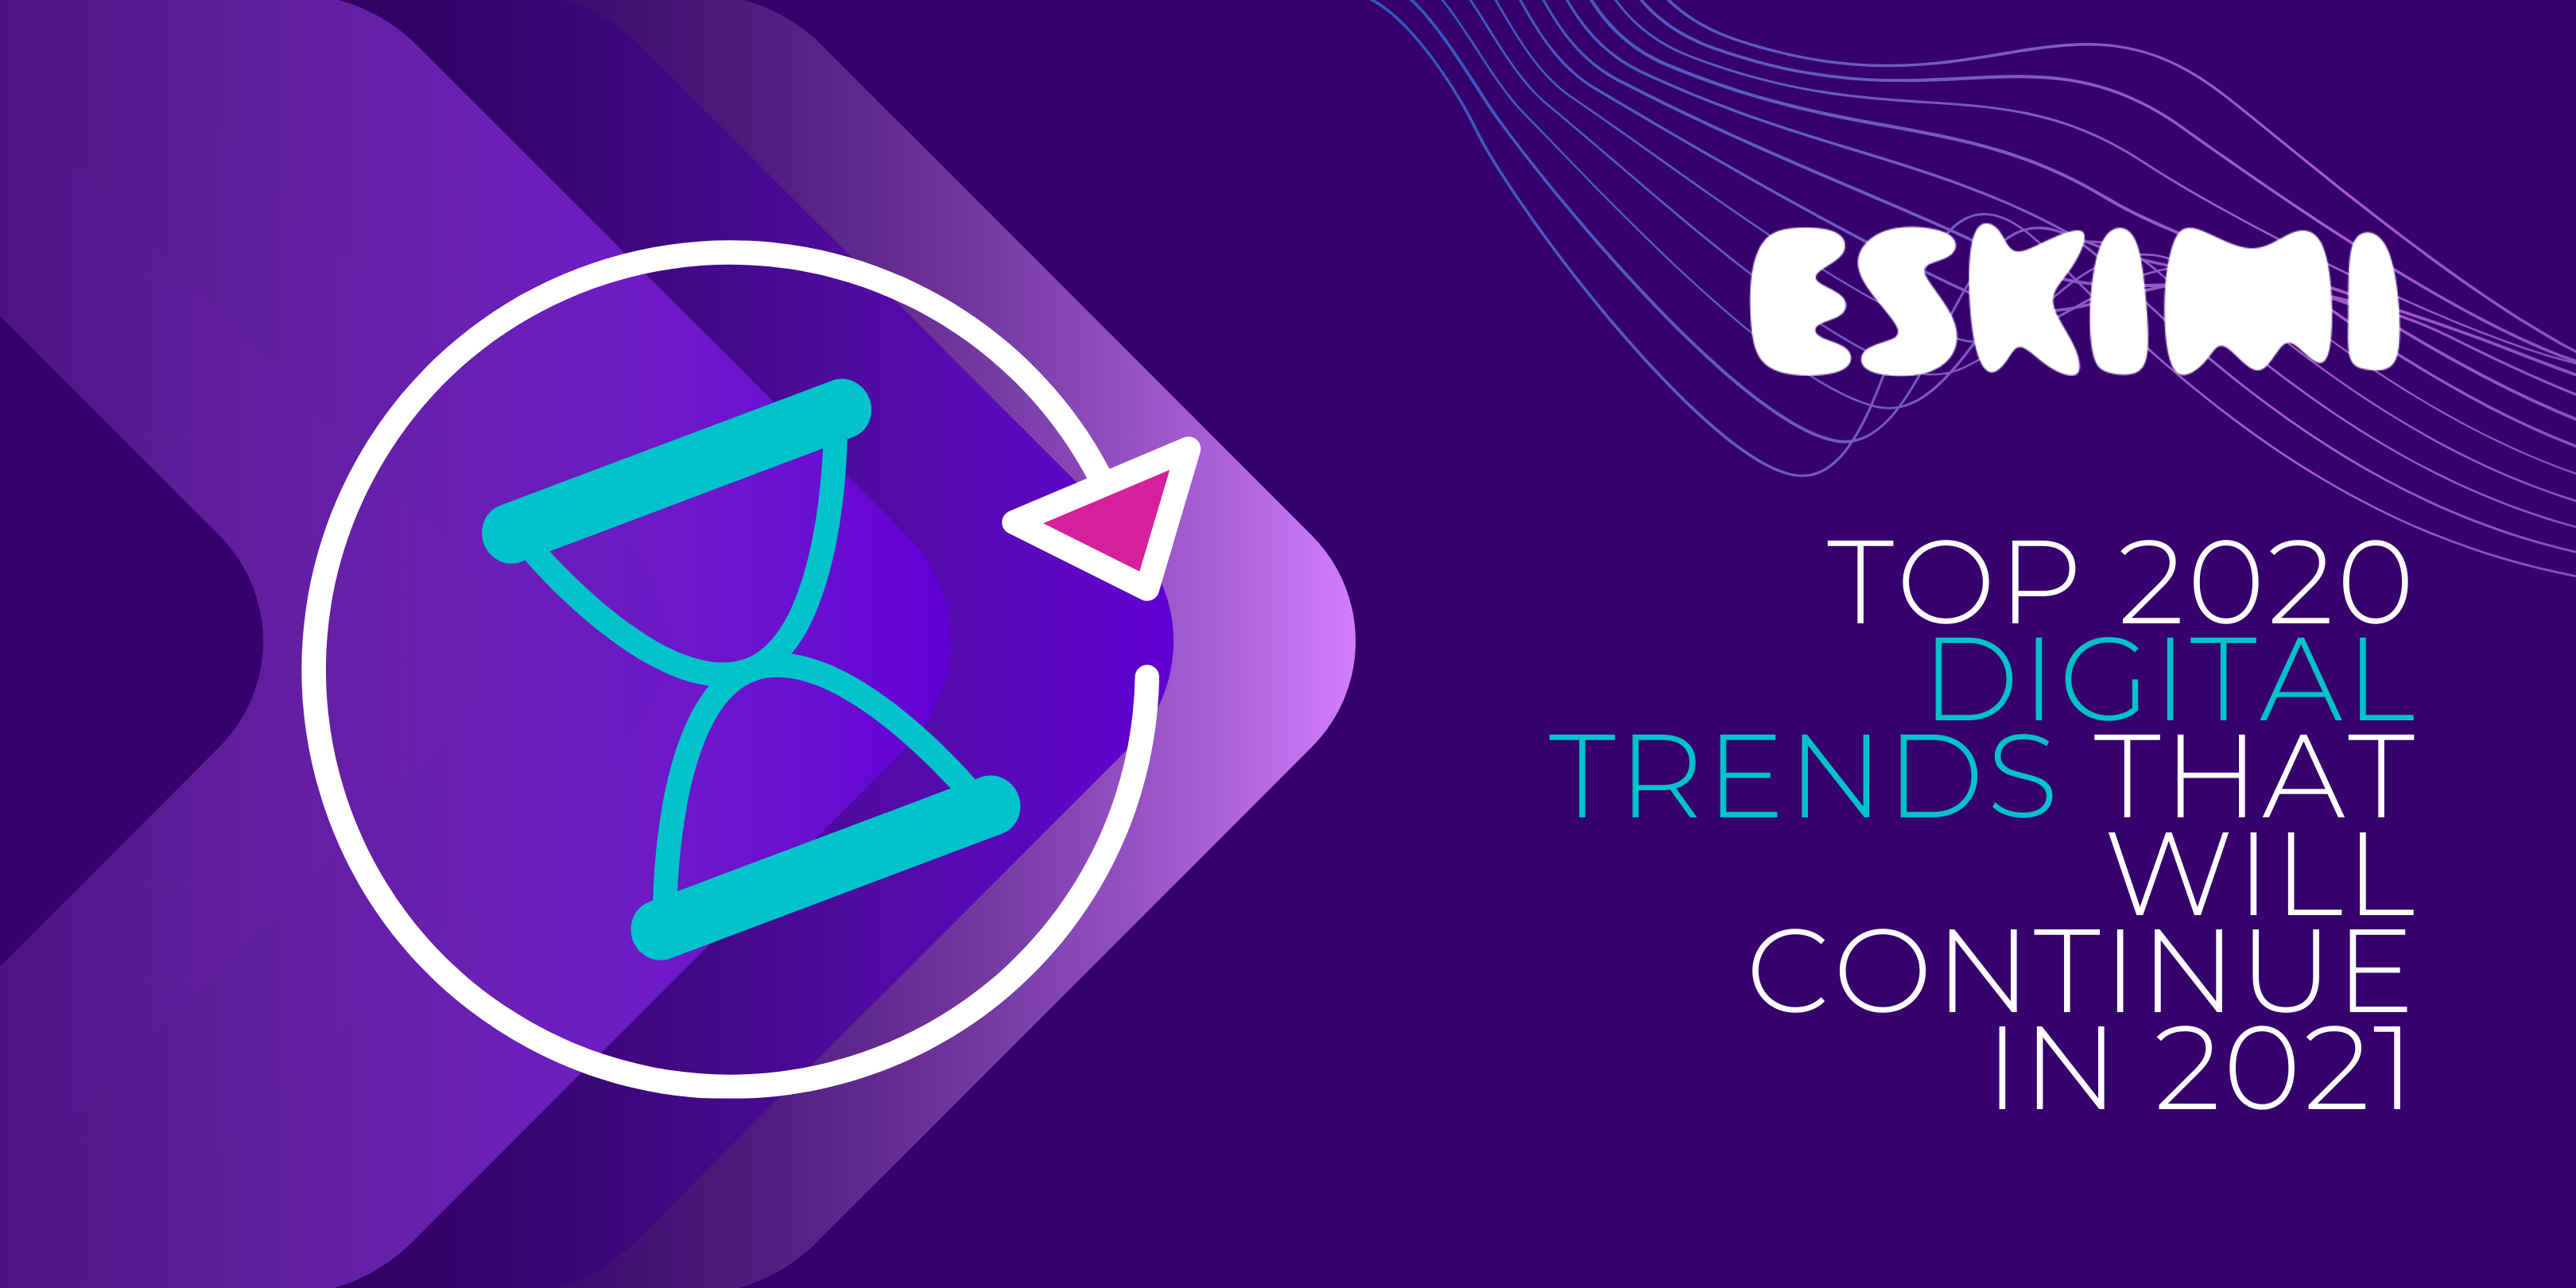 Top 2020 Digital Trends That Will Continue In 2021